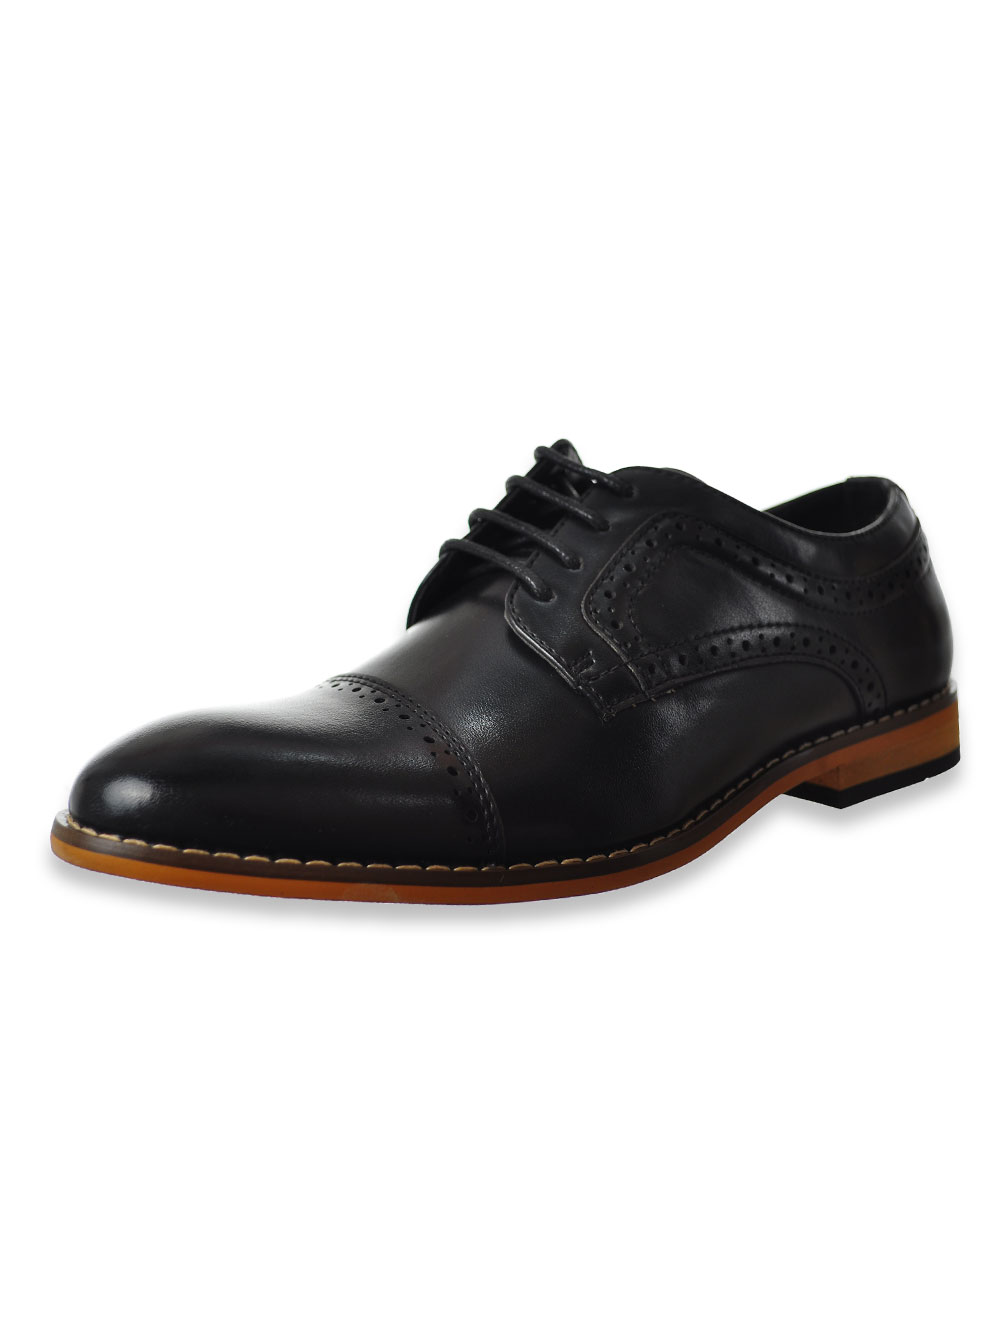 Size 4 Youth Dress Shoes for Boys